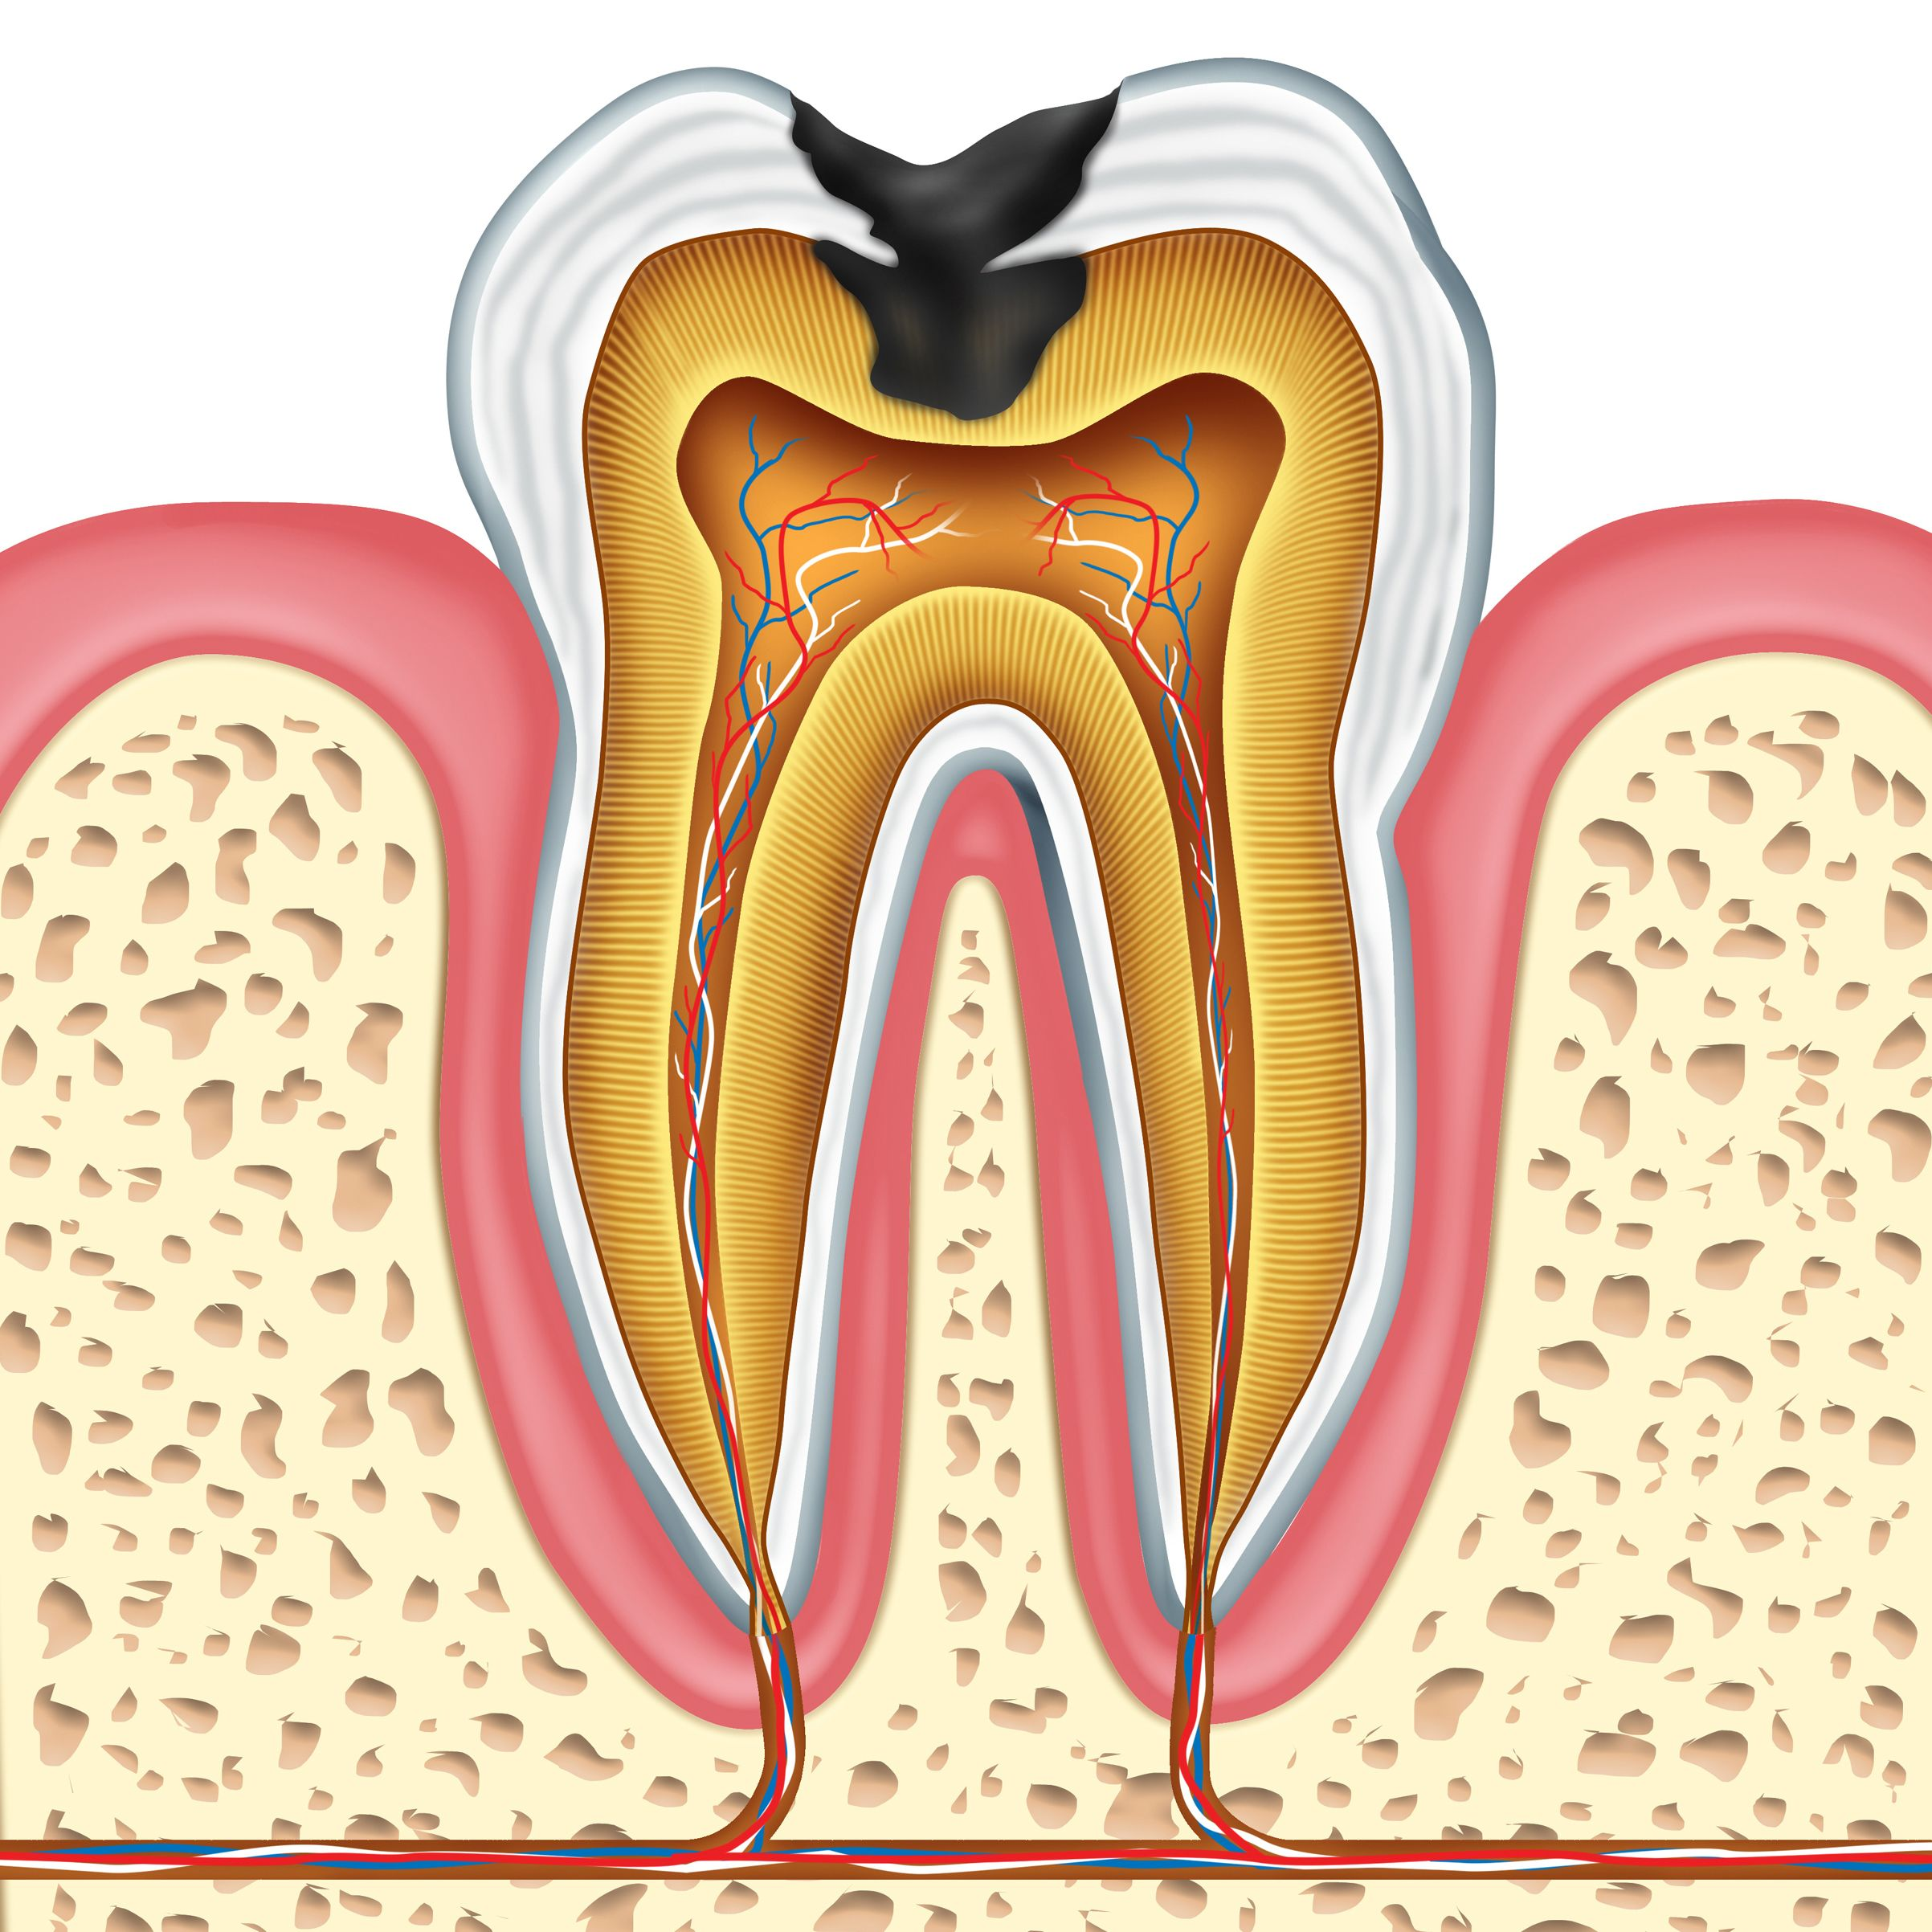 An illustration of a tooth with a cavity